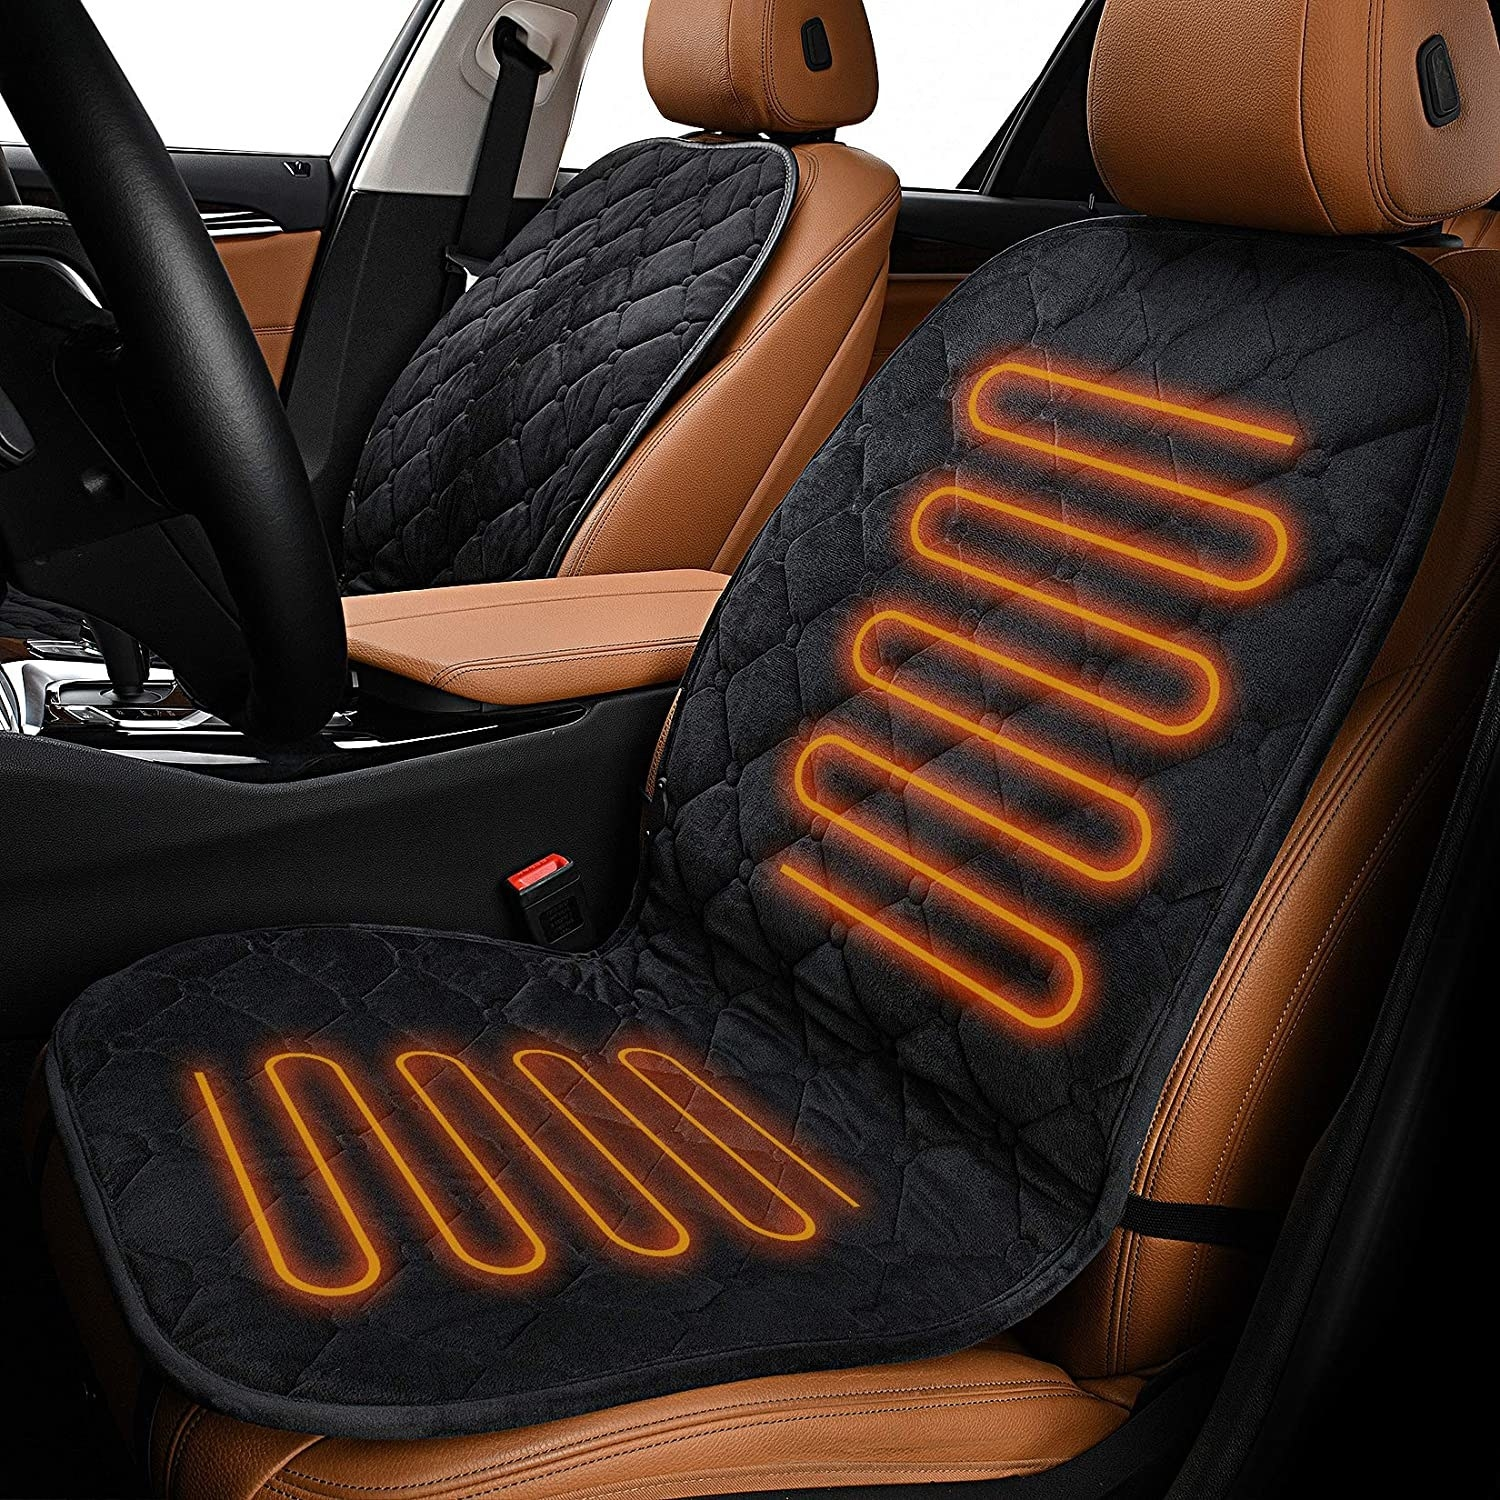 Seat covers added to seats in car